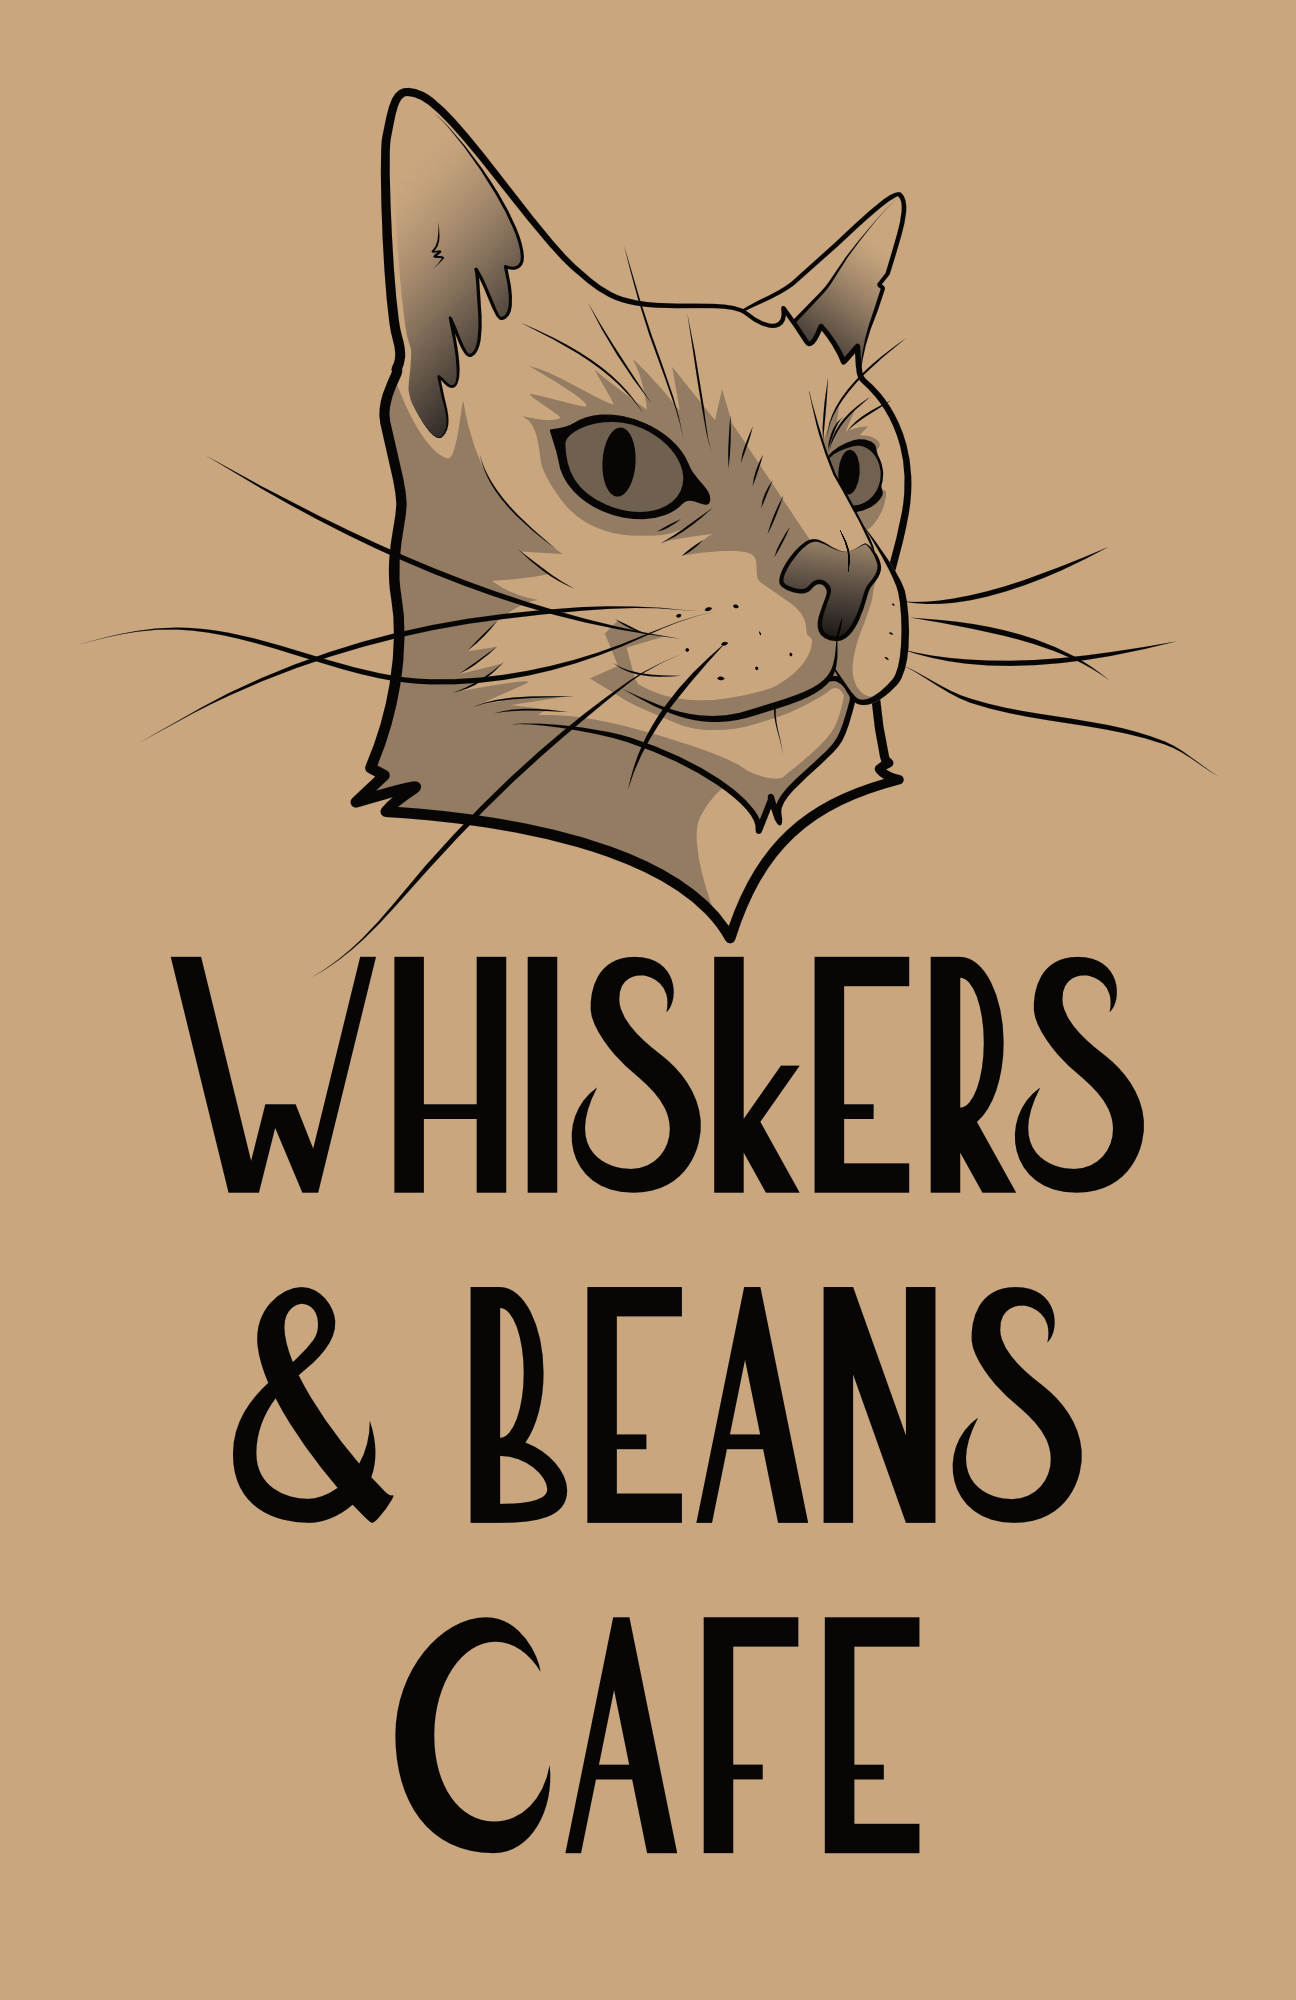 Whiskers & Beans Cafe Logo - brown